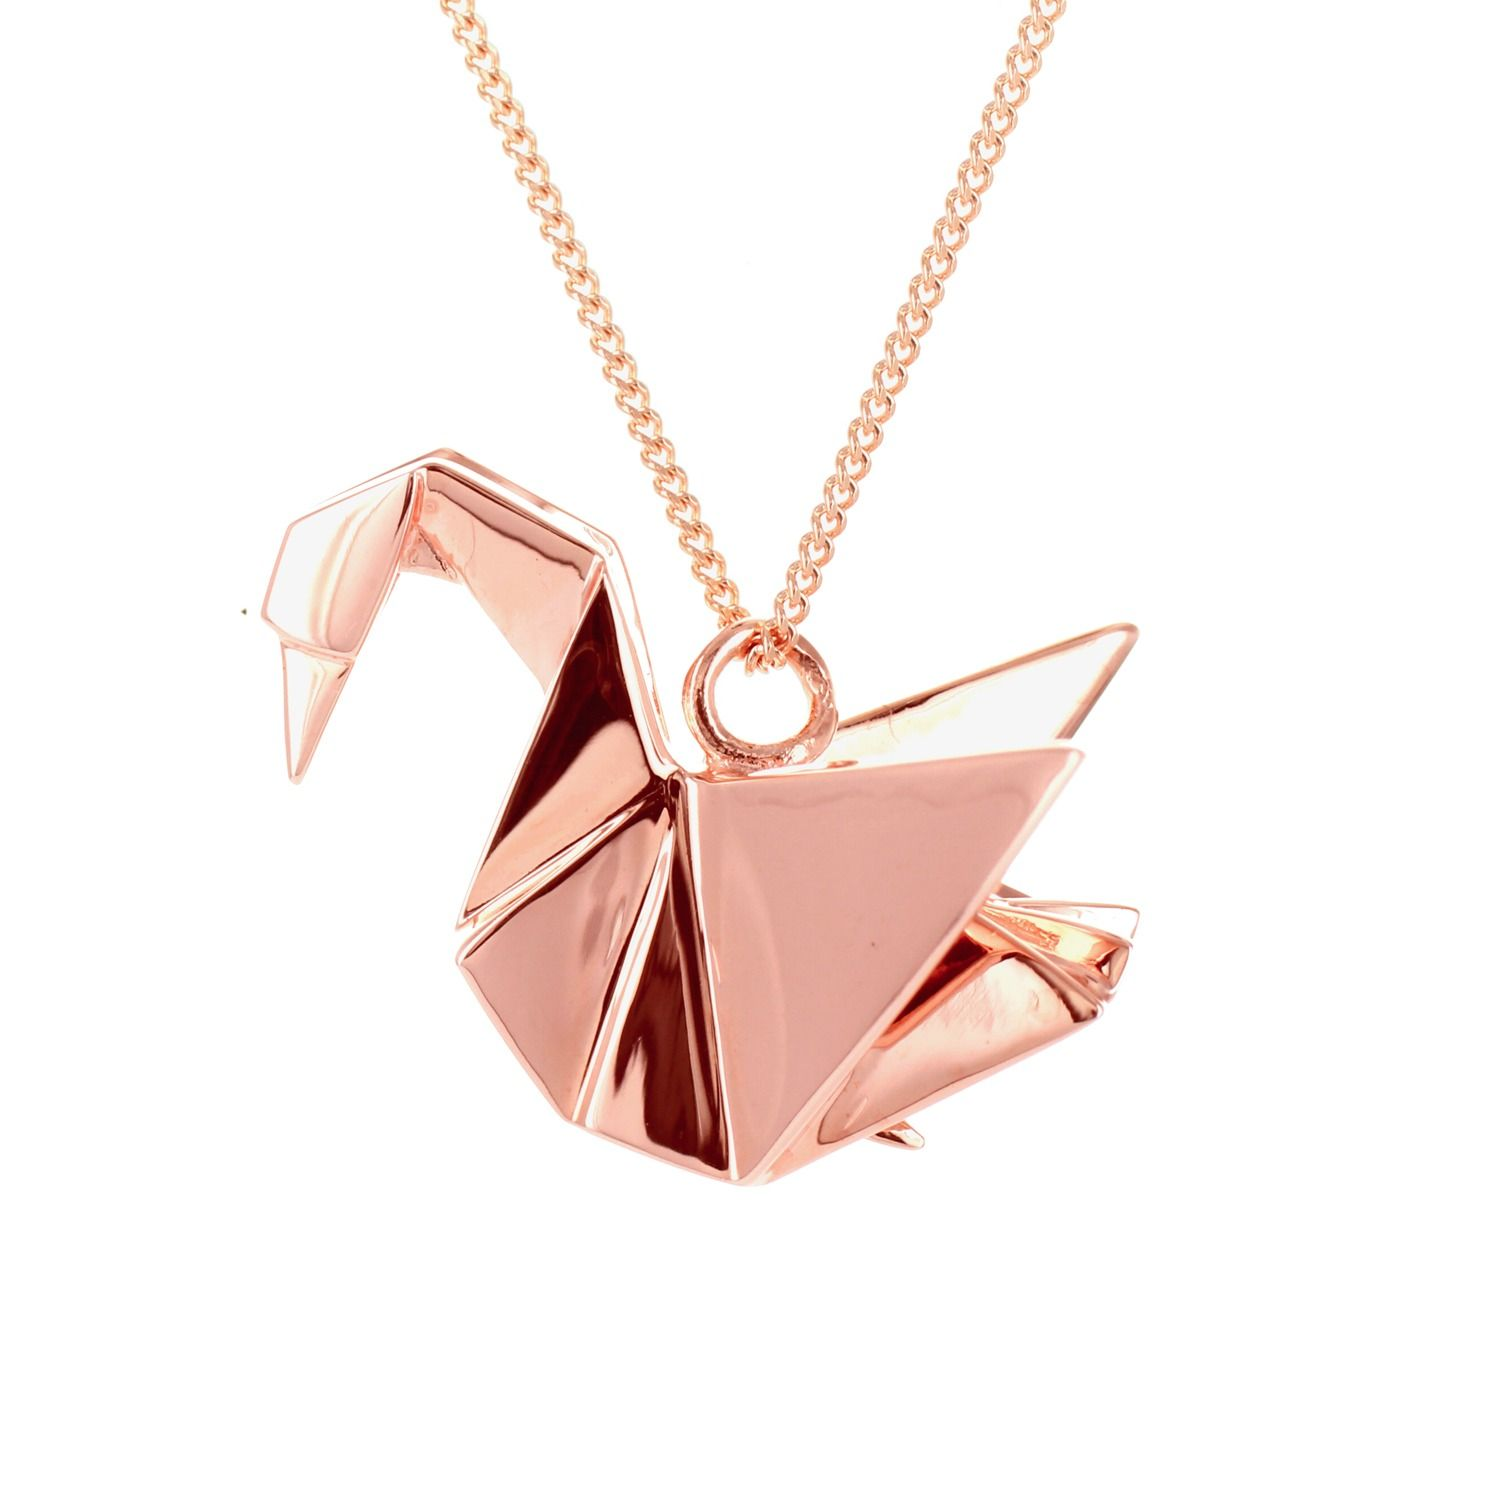 Origami Jewellery Sterling Silver Pink Gold Plated Bird Necklace 8HLeaAapm